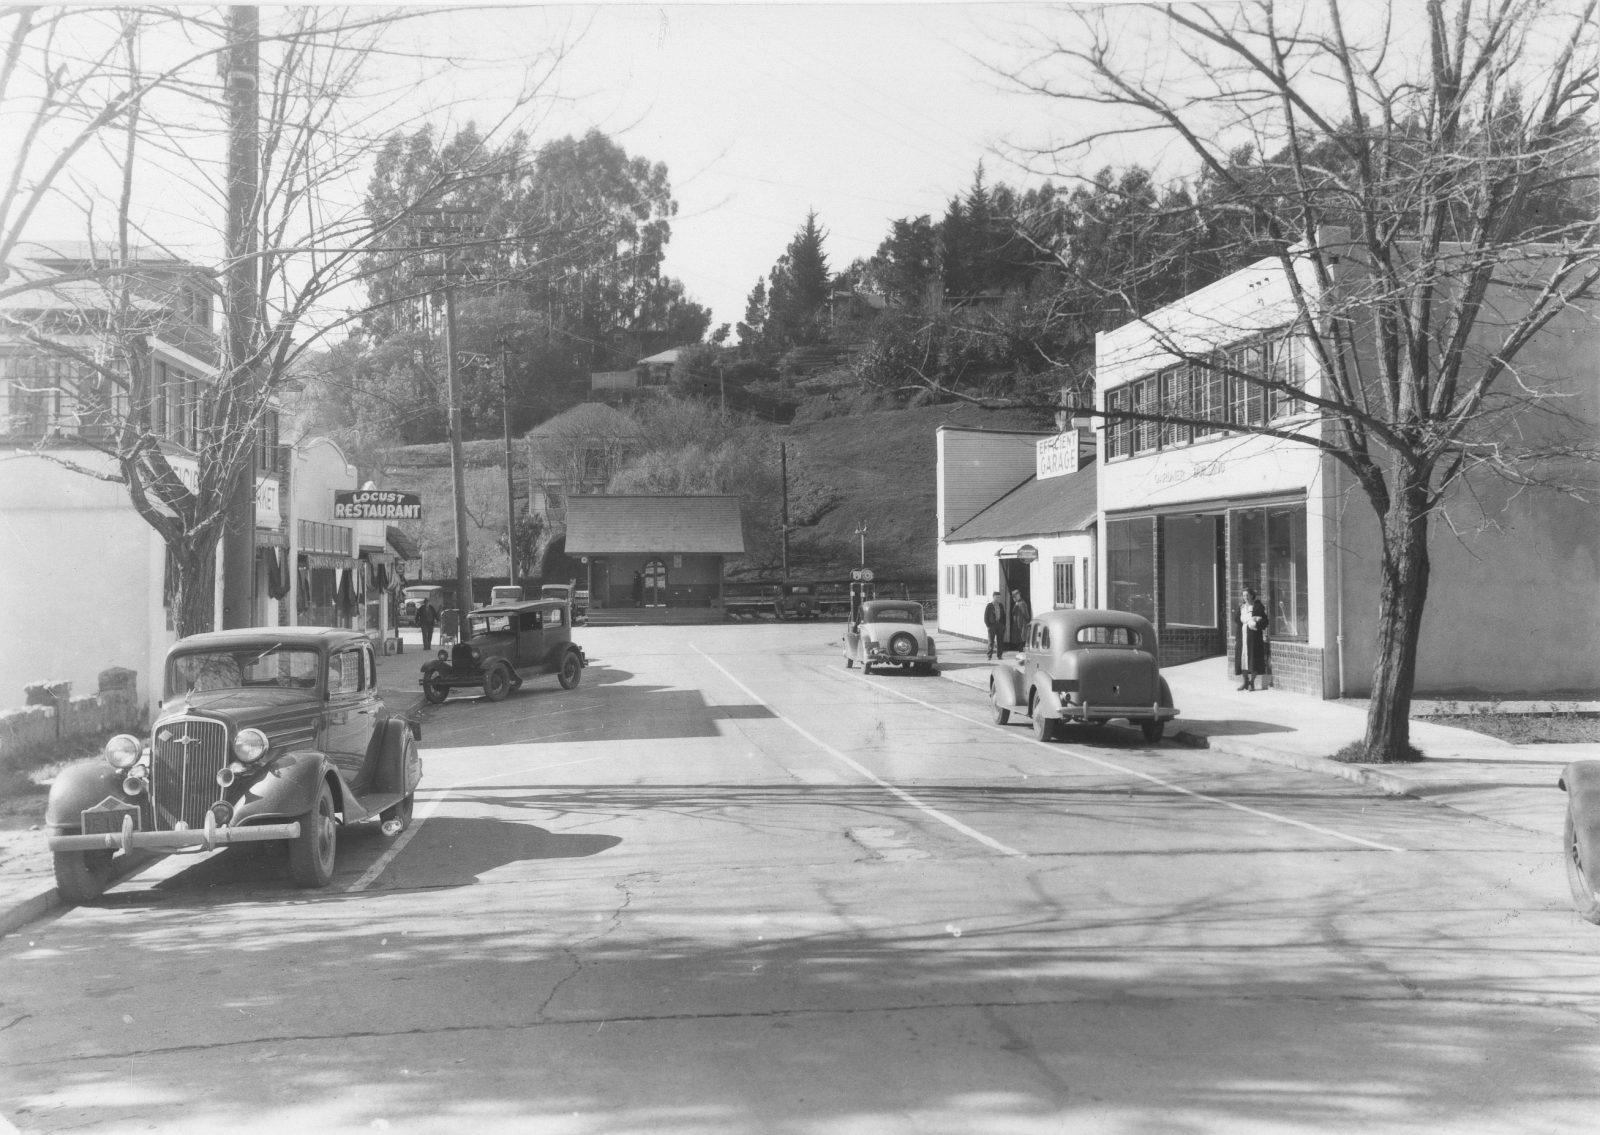 Locust Station and Locust Restaurant MVN 0306A - Courtesy of the Lucretia Little History Room, Mill Valley Public Library